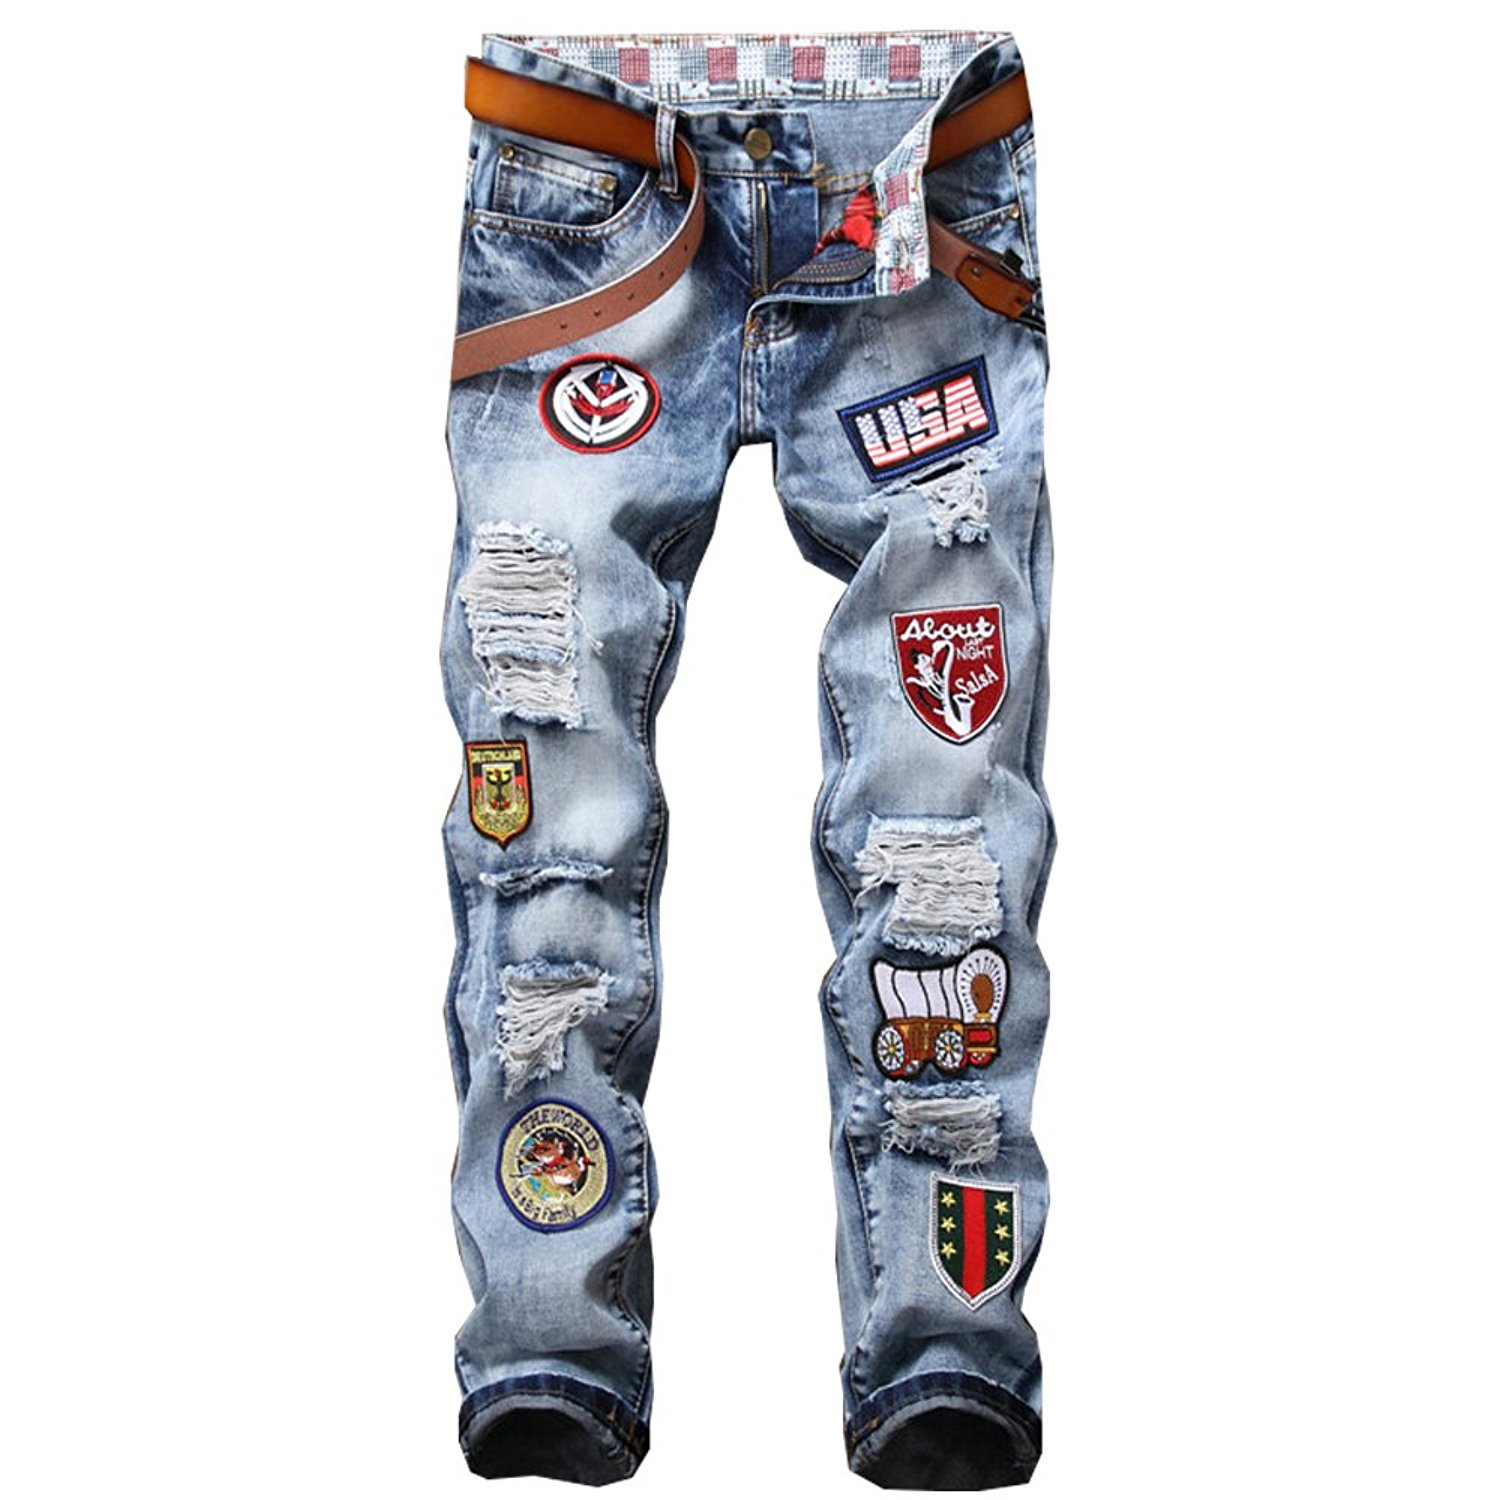 6c36b442 Get Quotations · Milan Station Men's Embroidery Ripped Biker Destroyed  Badges Patchwork Jeans with Hole